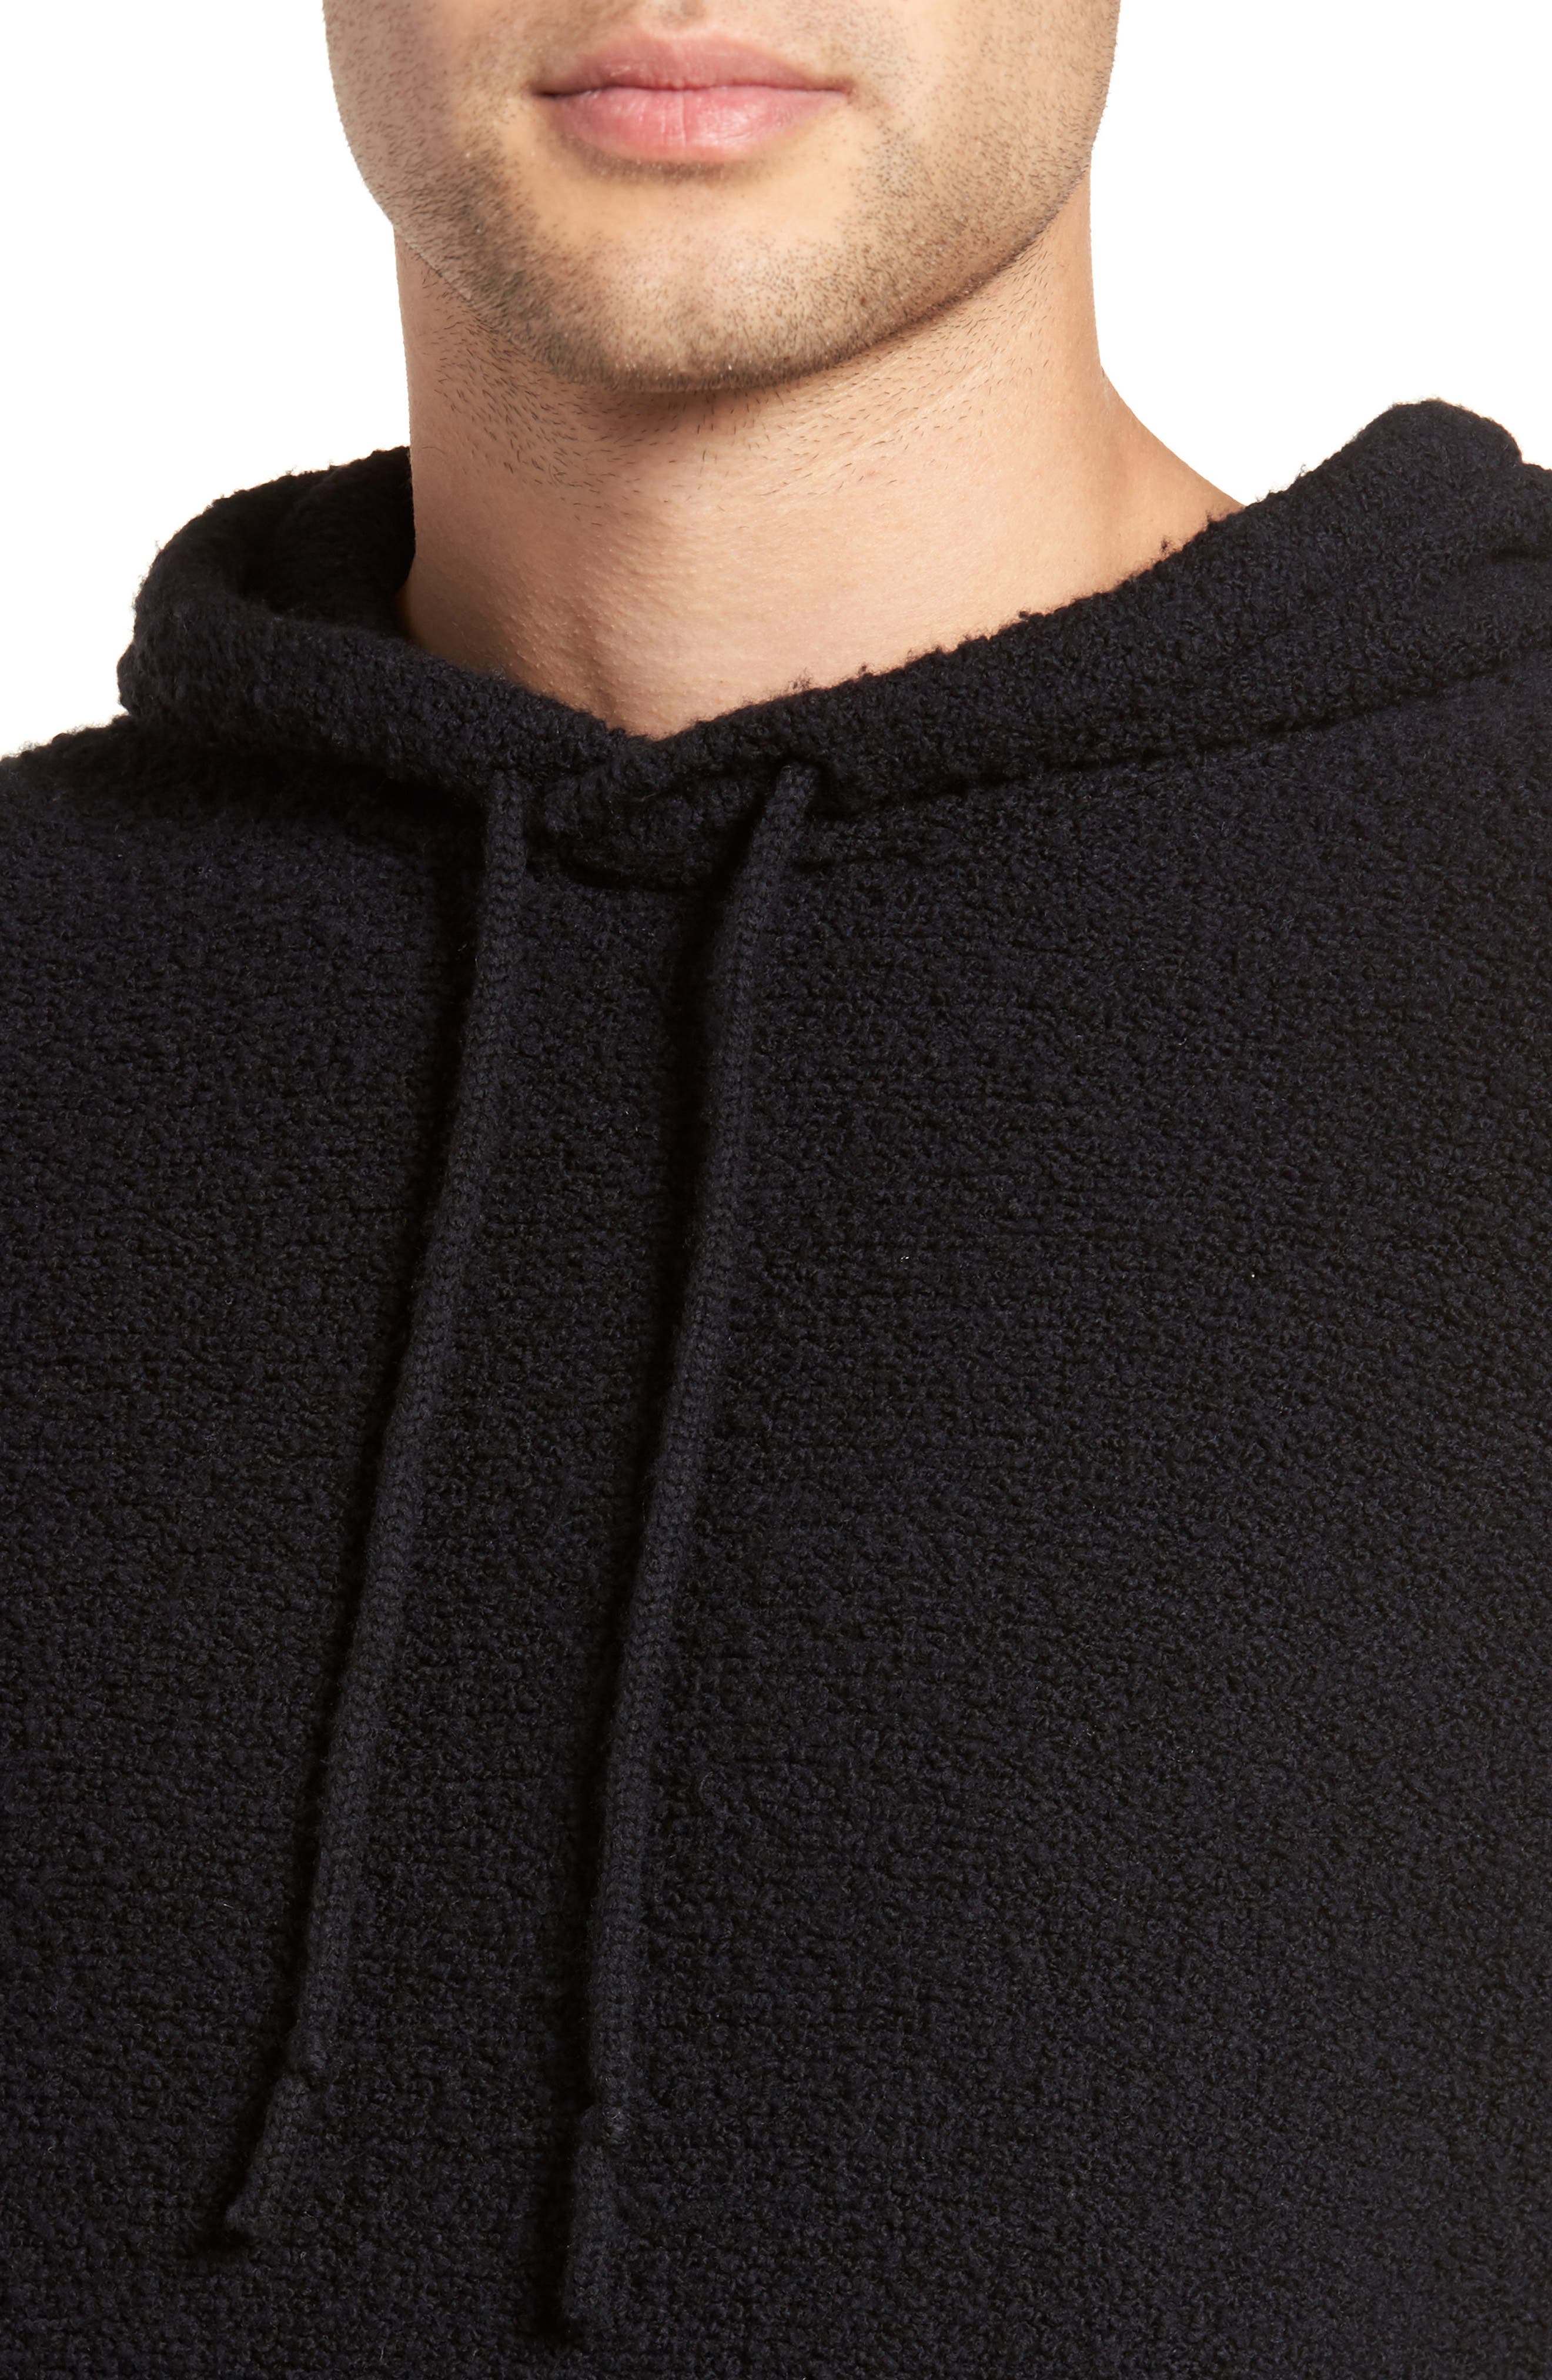 Wool Fleece Pullover Hoodie,                             Alternate thumbnail 4, color,                             BLACK